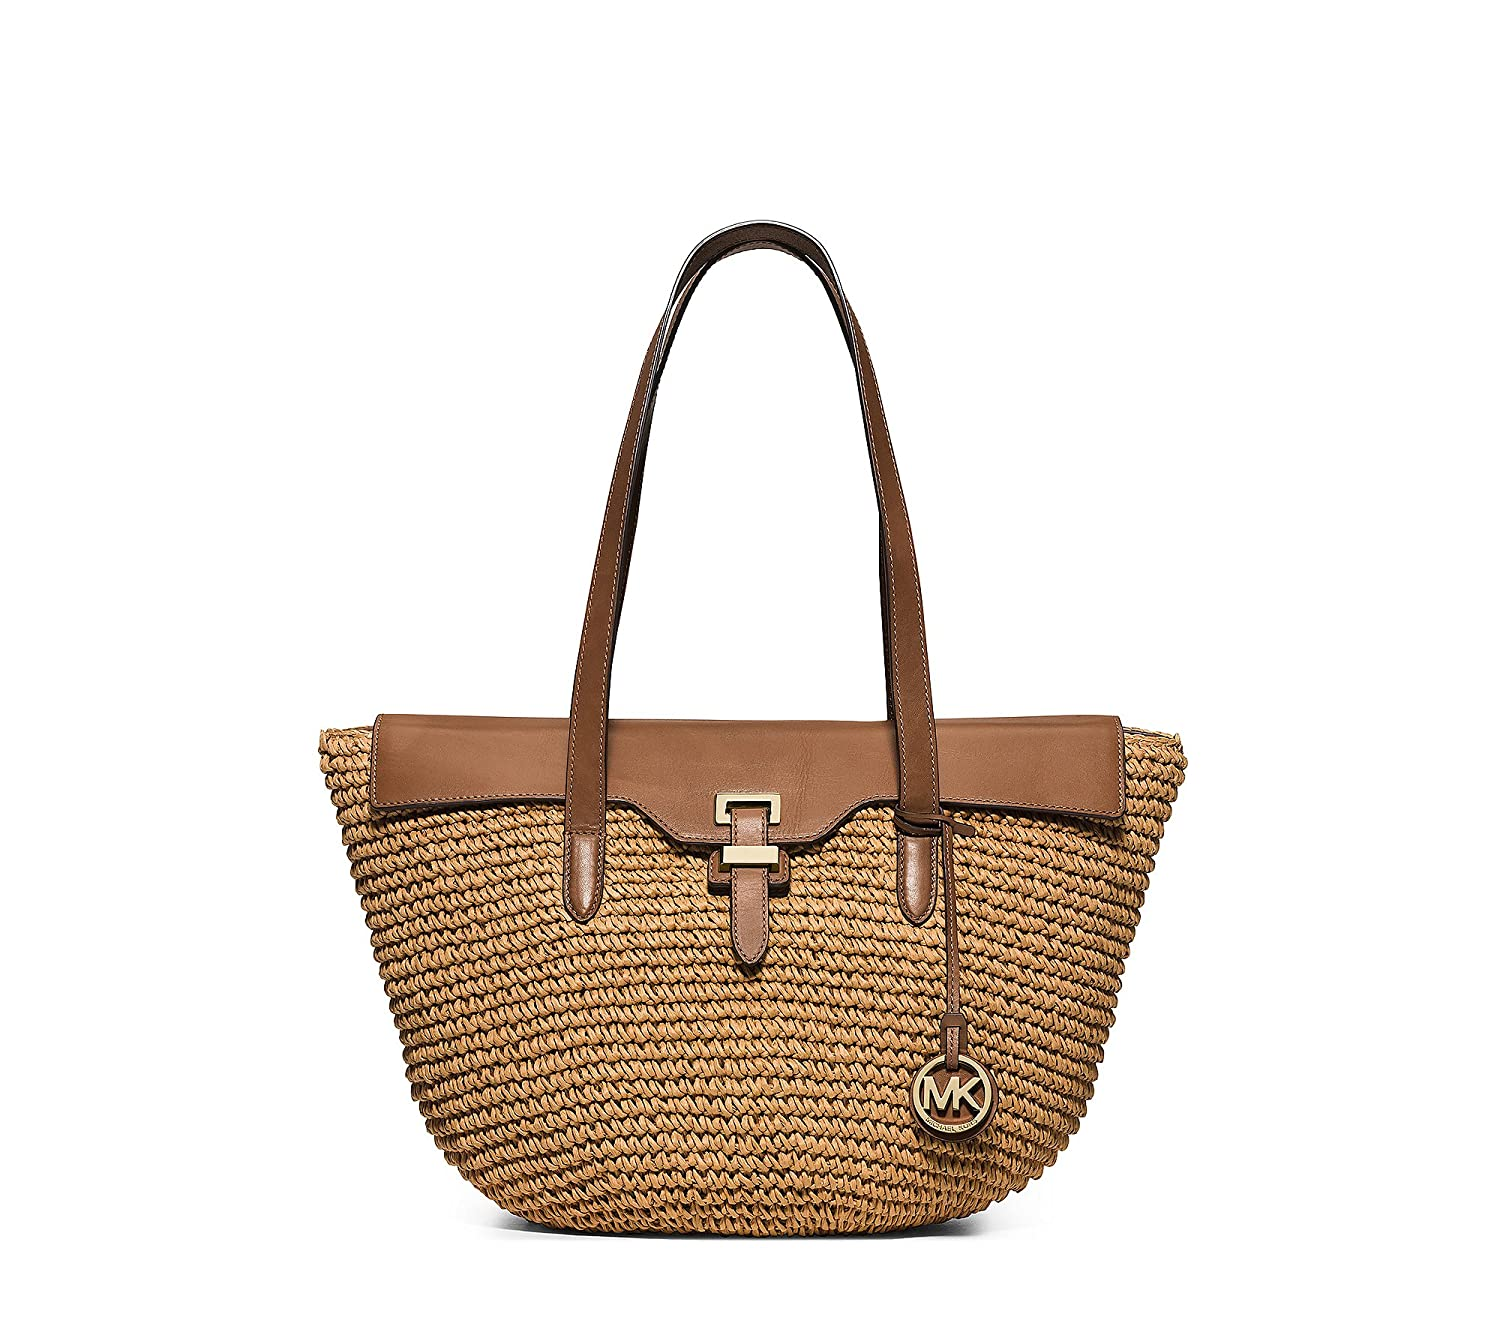 7cb1acb10371 MICHAEL Michael Kors Straw Naomi Large Tote Walnut/Gold: Amazon.co.uk:  Shoes & Bags